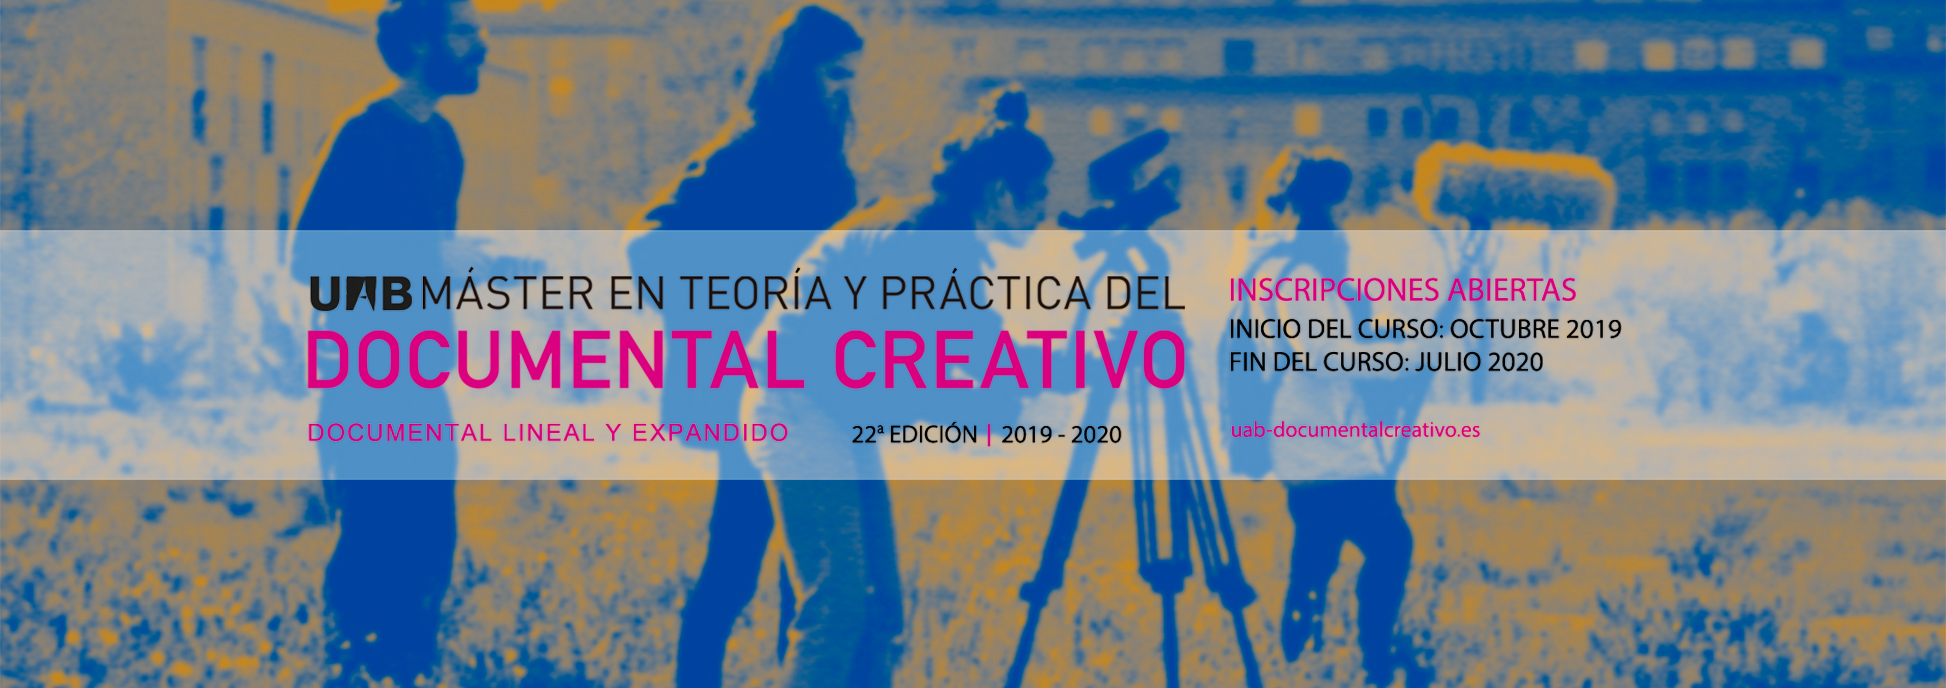 Calendario Uab.Introduction Uab Master En Teoria Y Practica Del Documental Creativo